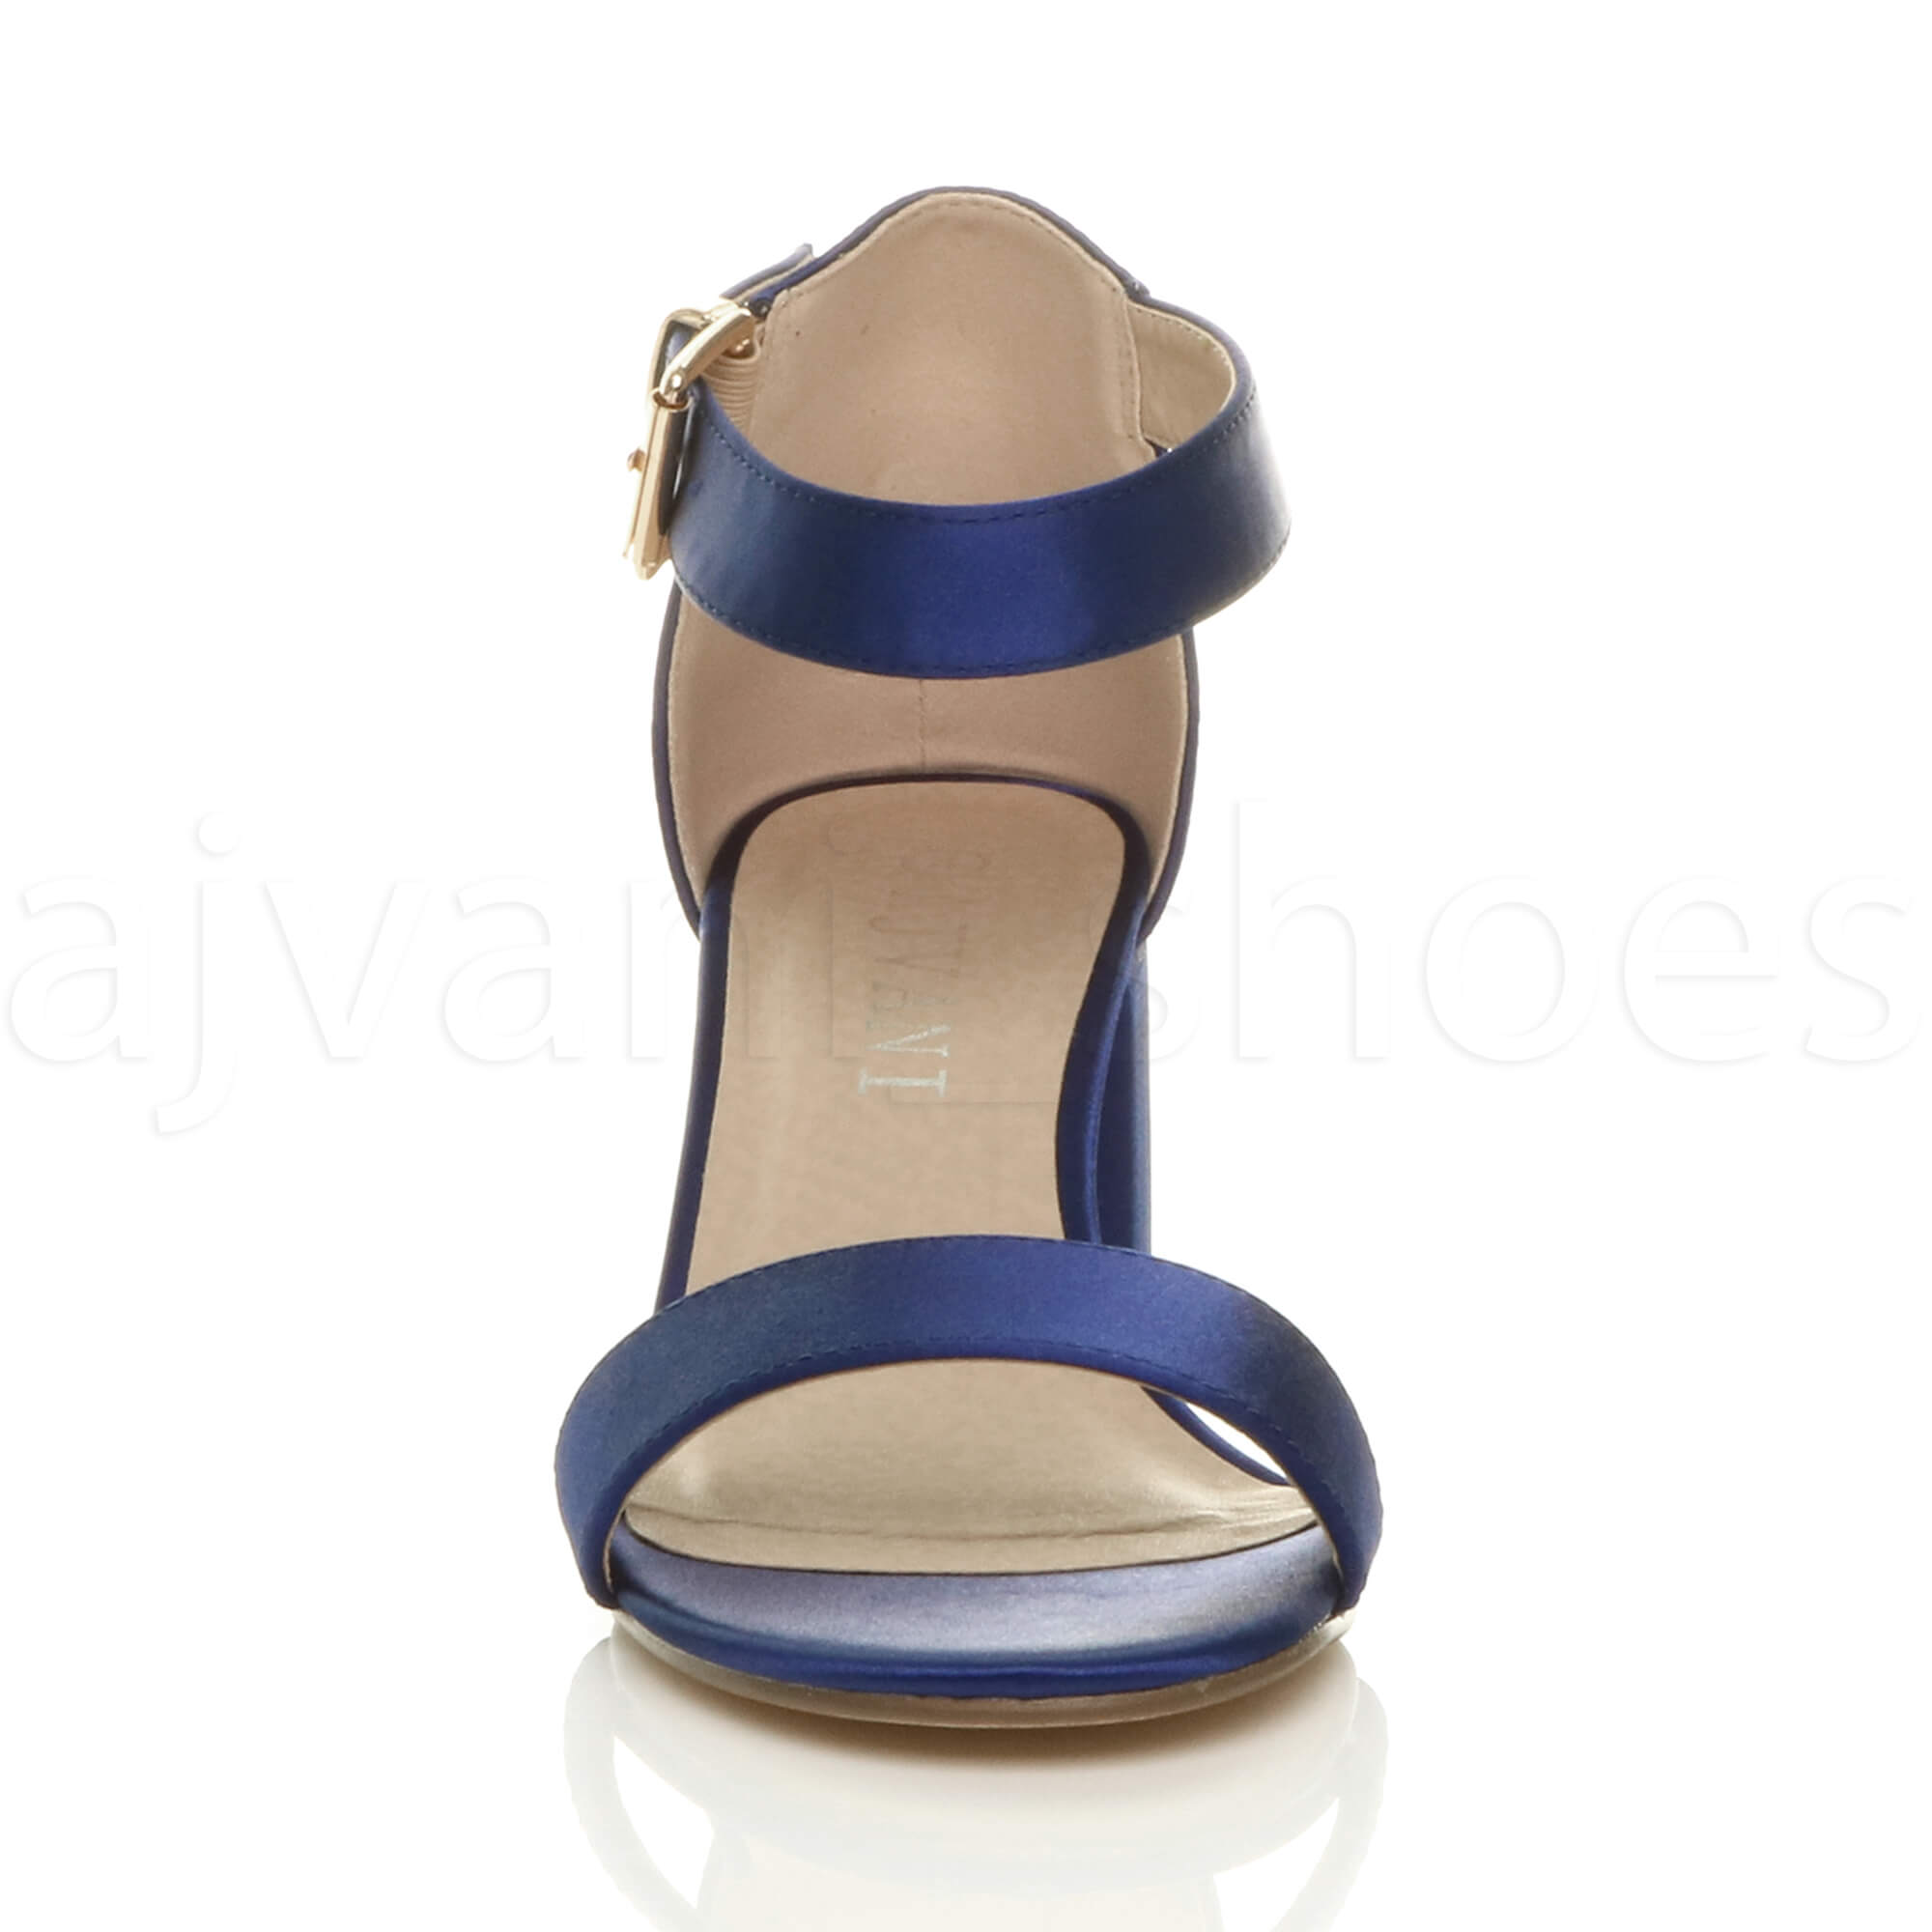 WOMENS-LADIES-LOW-MID-BLOCK-HEEL-ANKLE-STRAP-BUCKLE-PARTY-STRAPPY-SANDALS-SIZE thumbnail 123